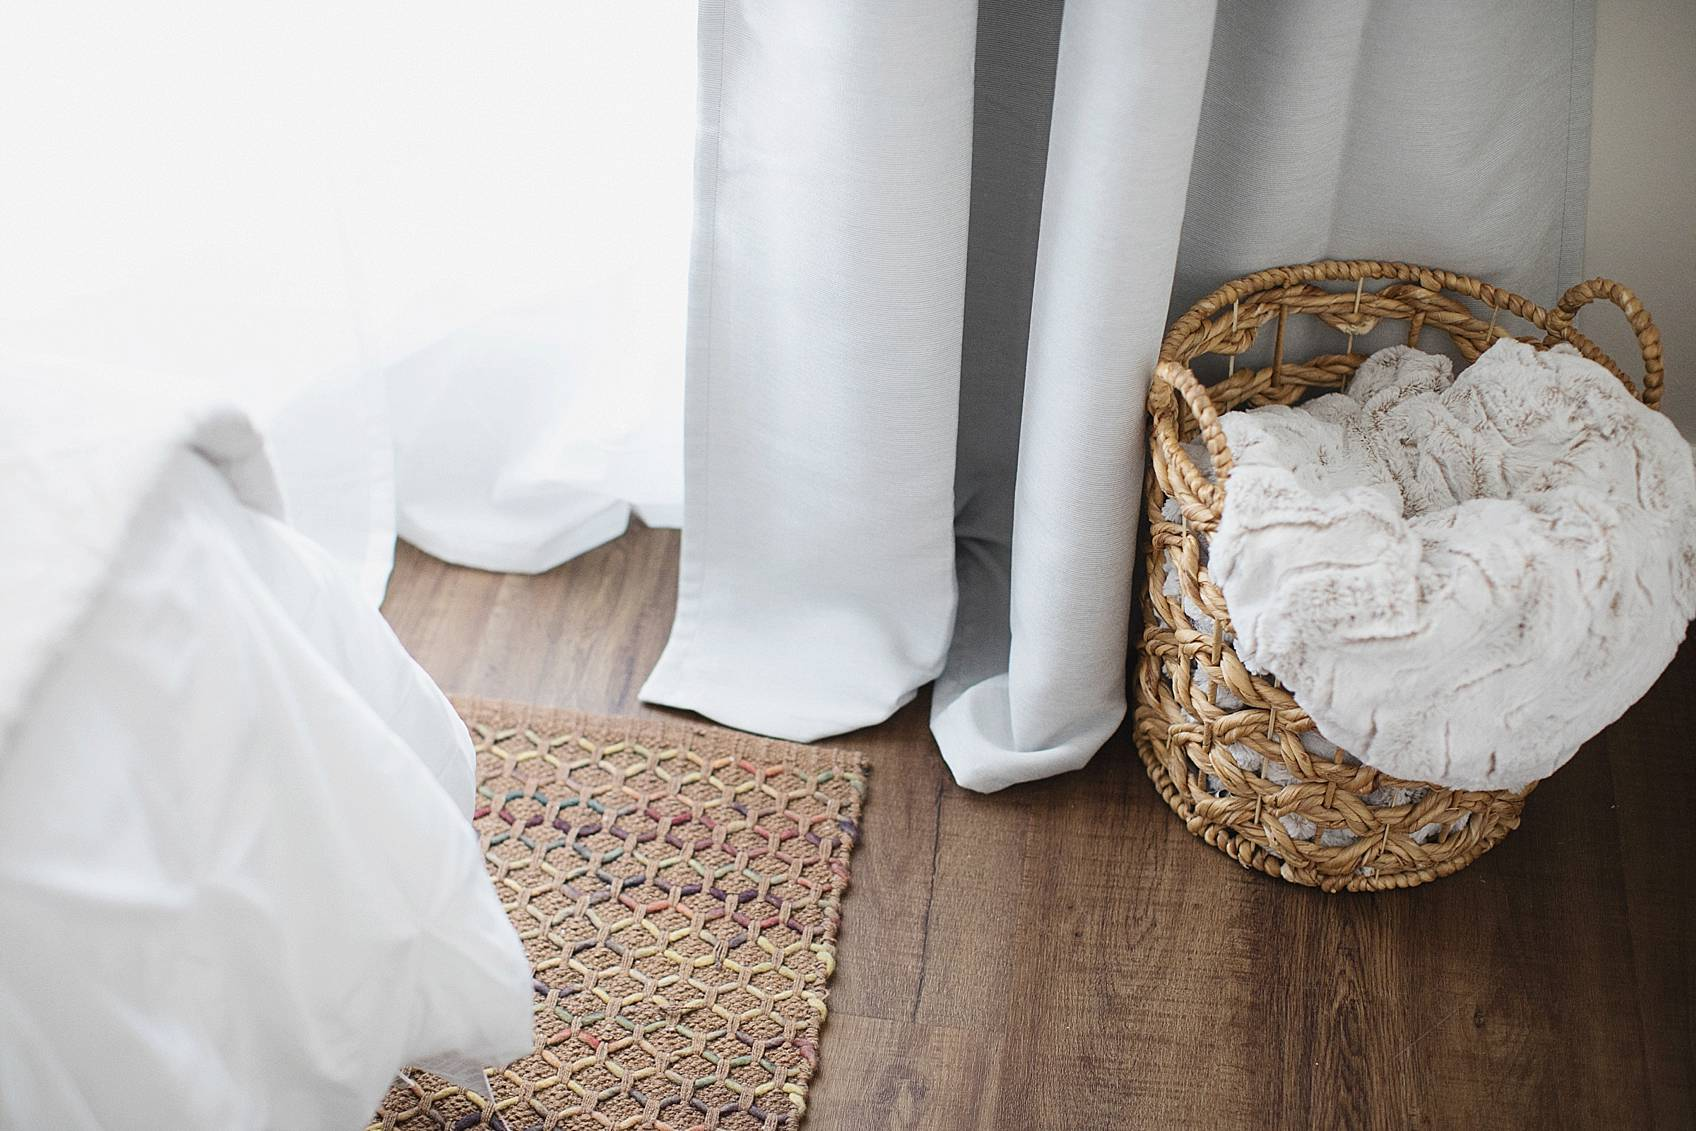 blanket in basket and rug to showcase textures and boho home trend